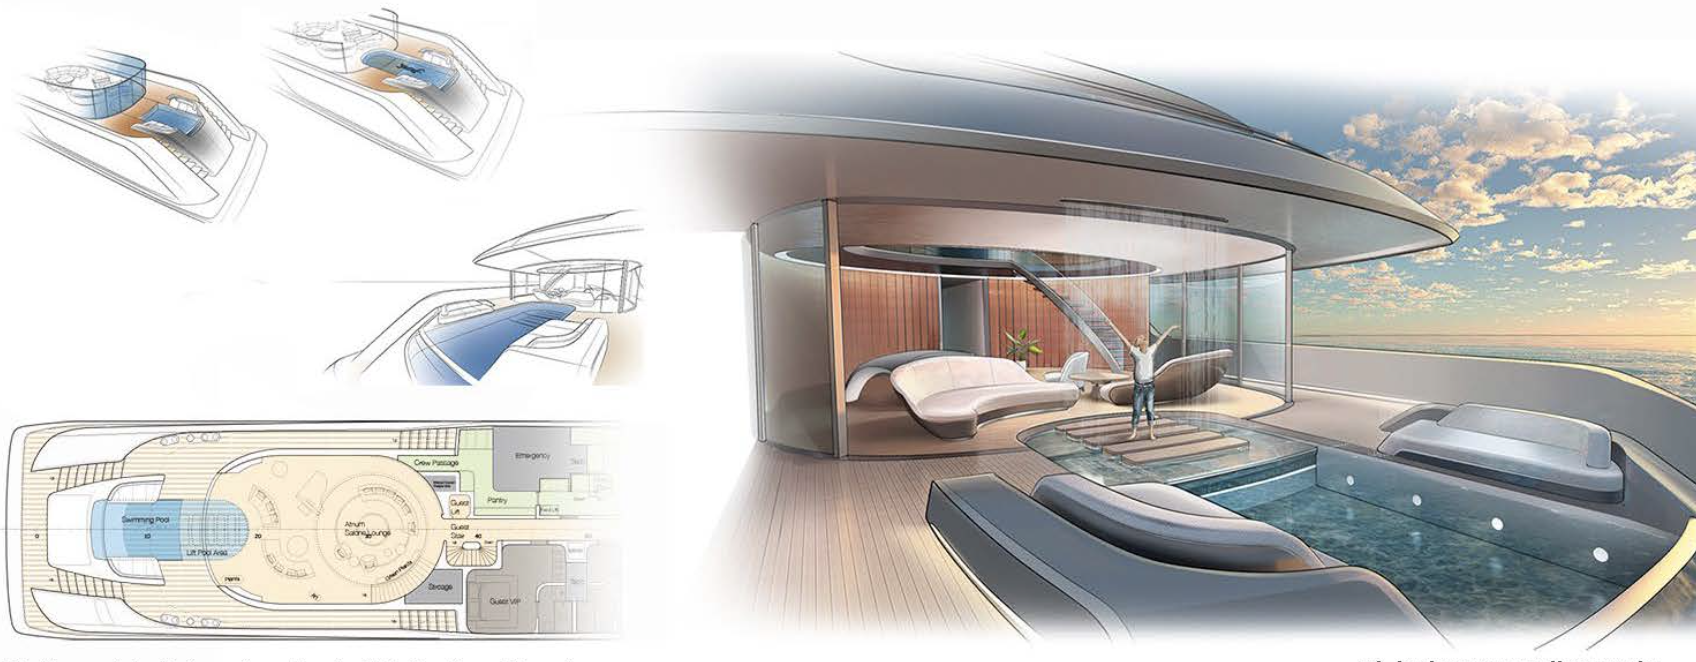 SILK ROAD YACHTS Interior Concept